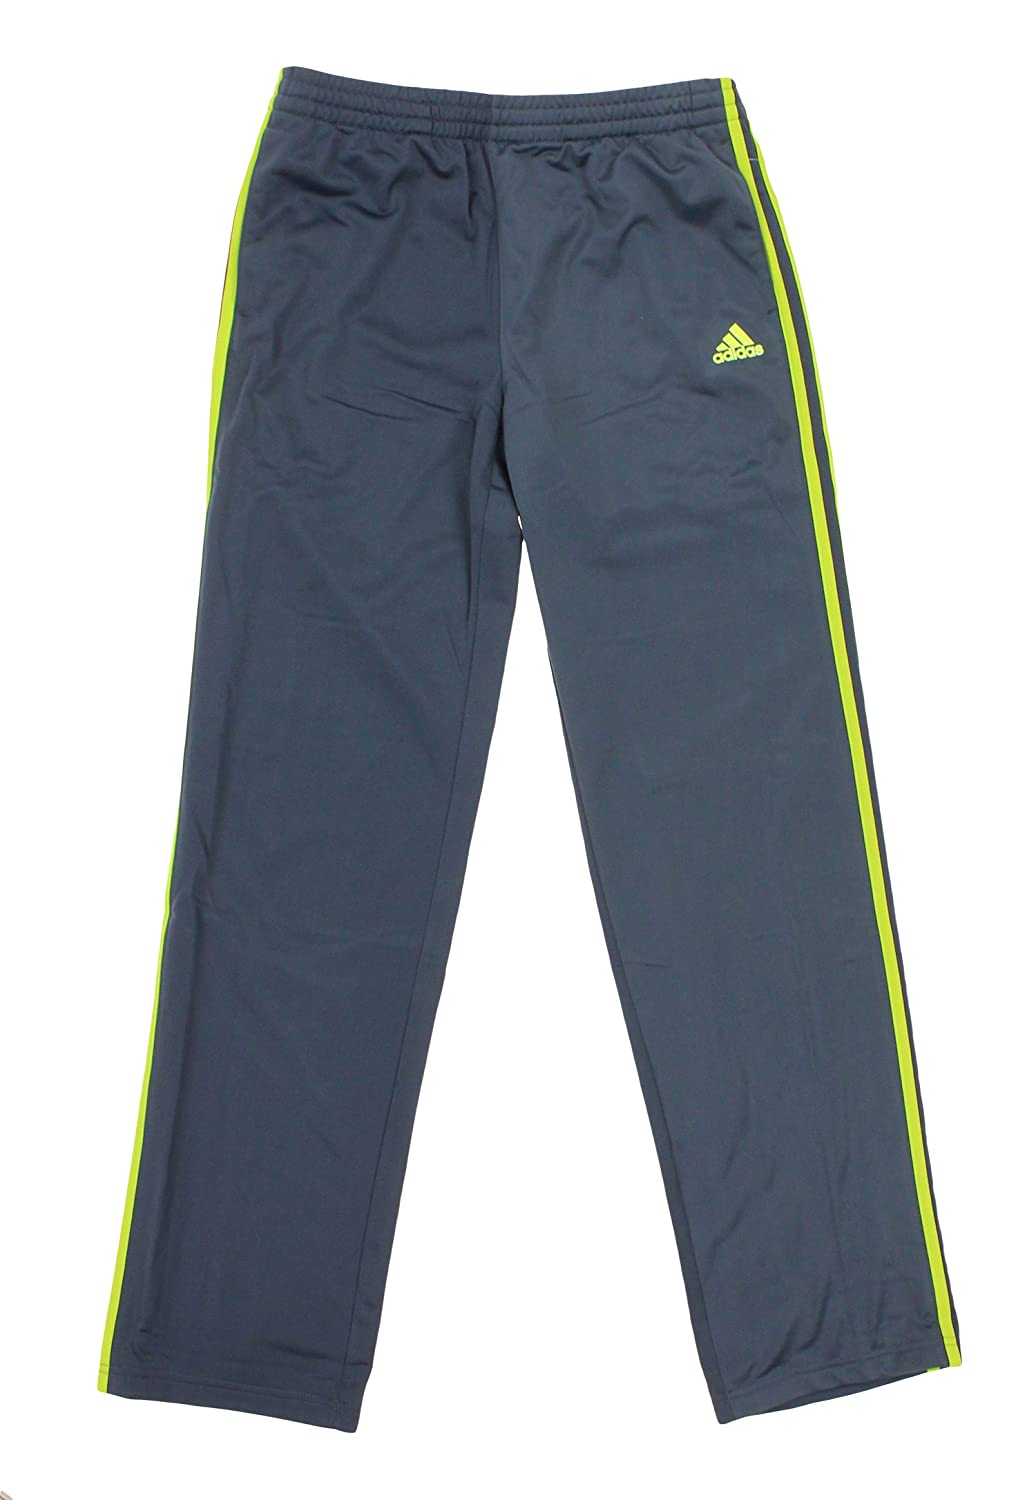 Adidas Big Boys Youth Designator Pants